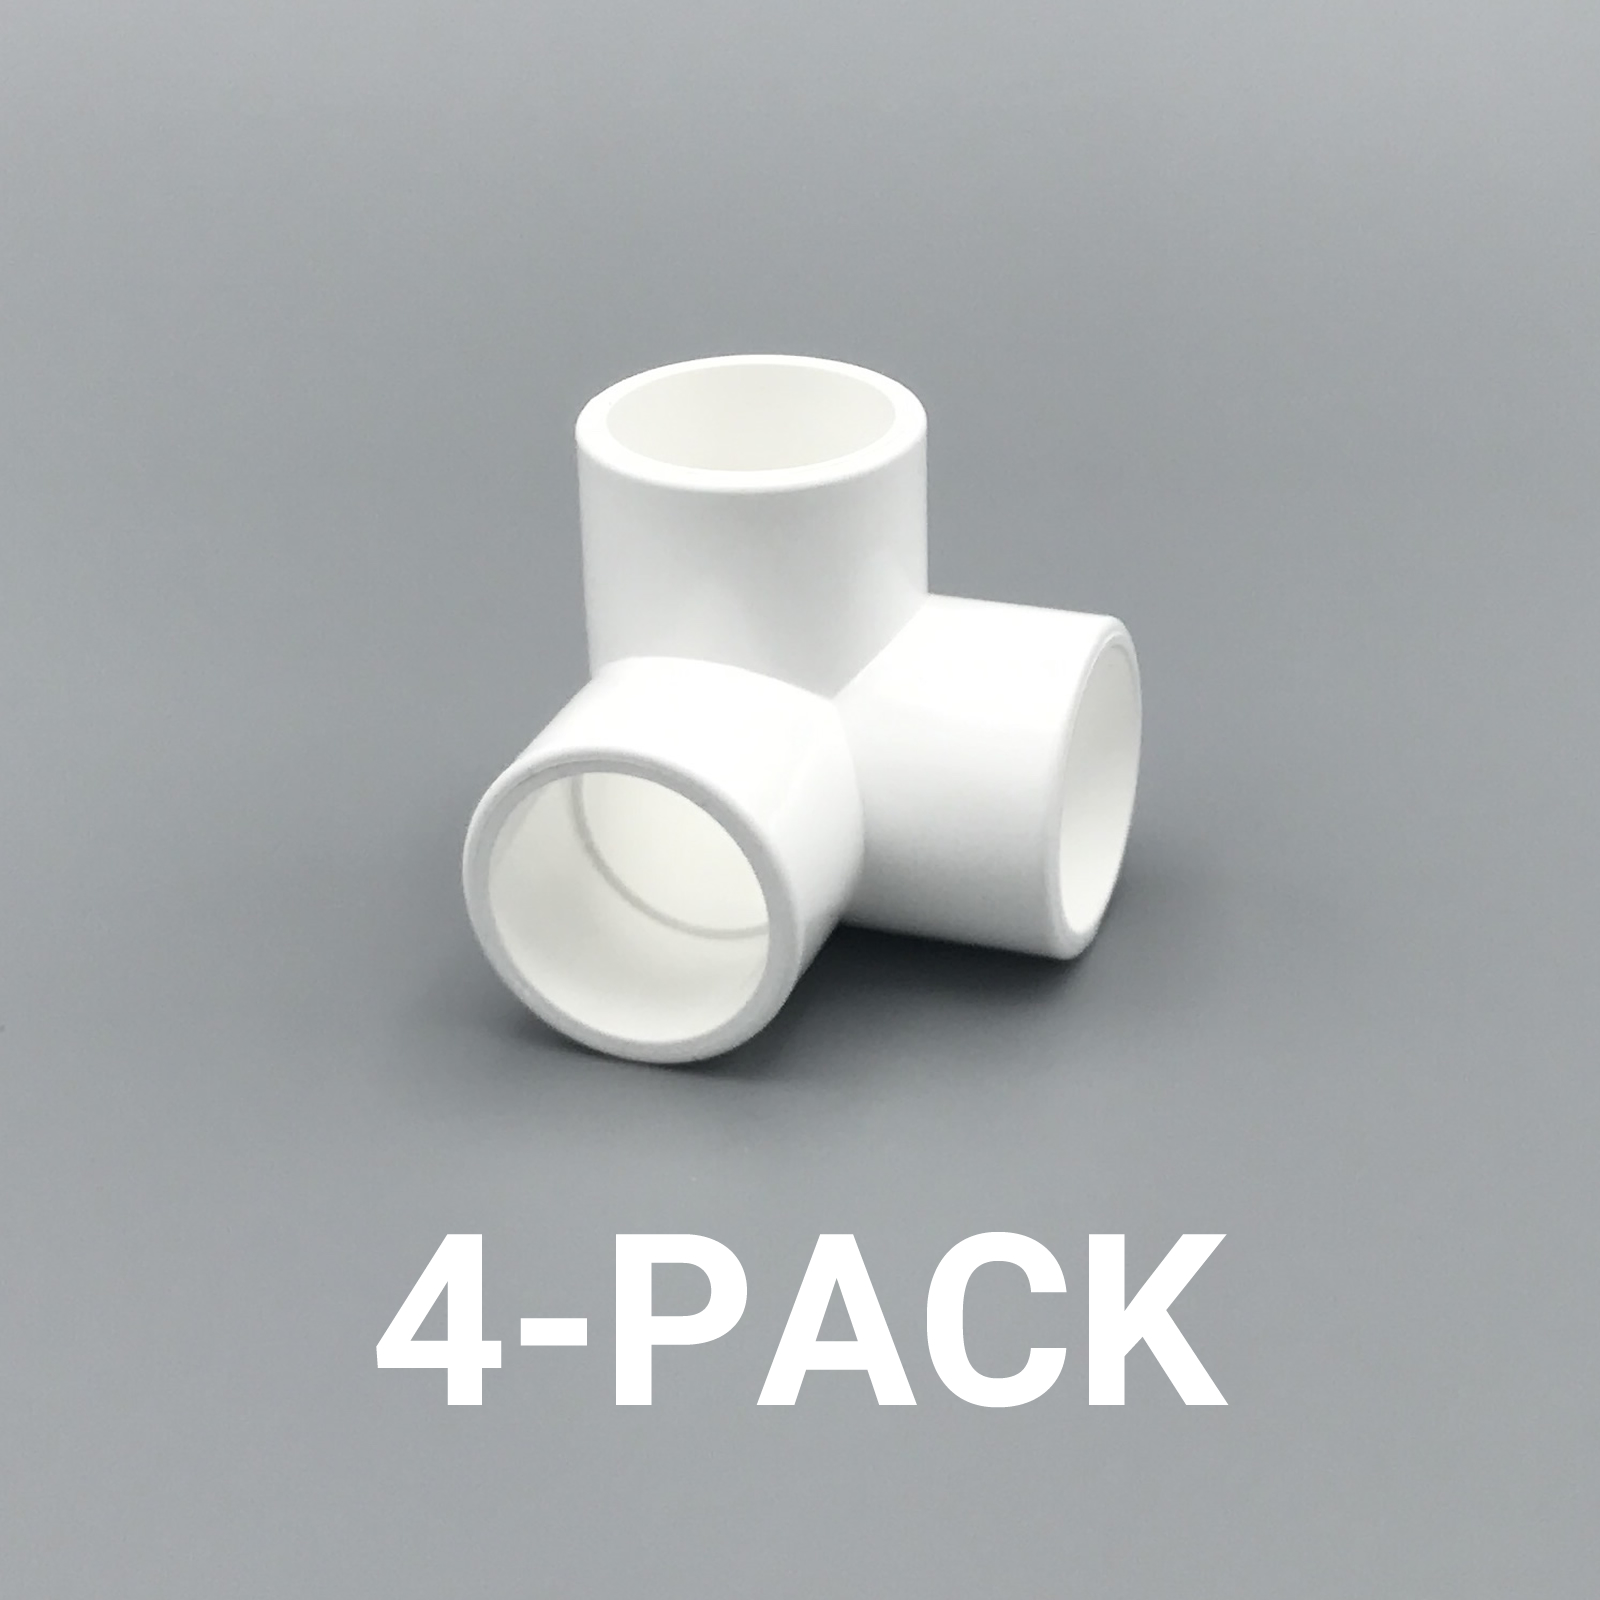 Pvc Pipe Fittings Corner : Quot inch way corner elbow pvc fitting connector